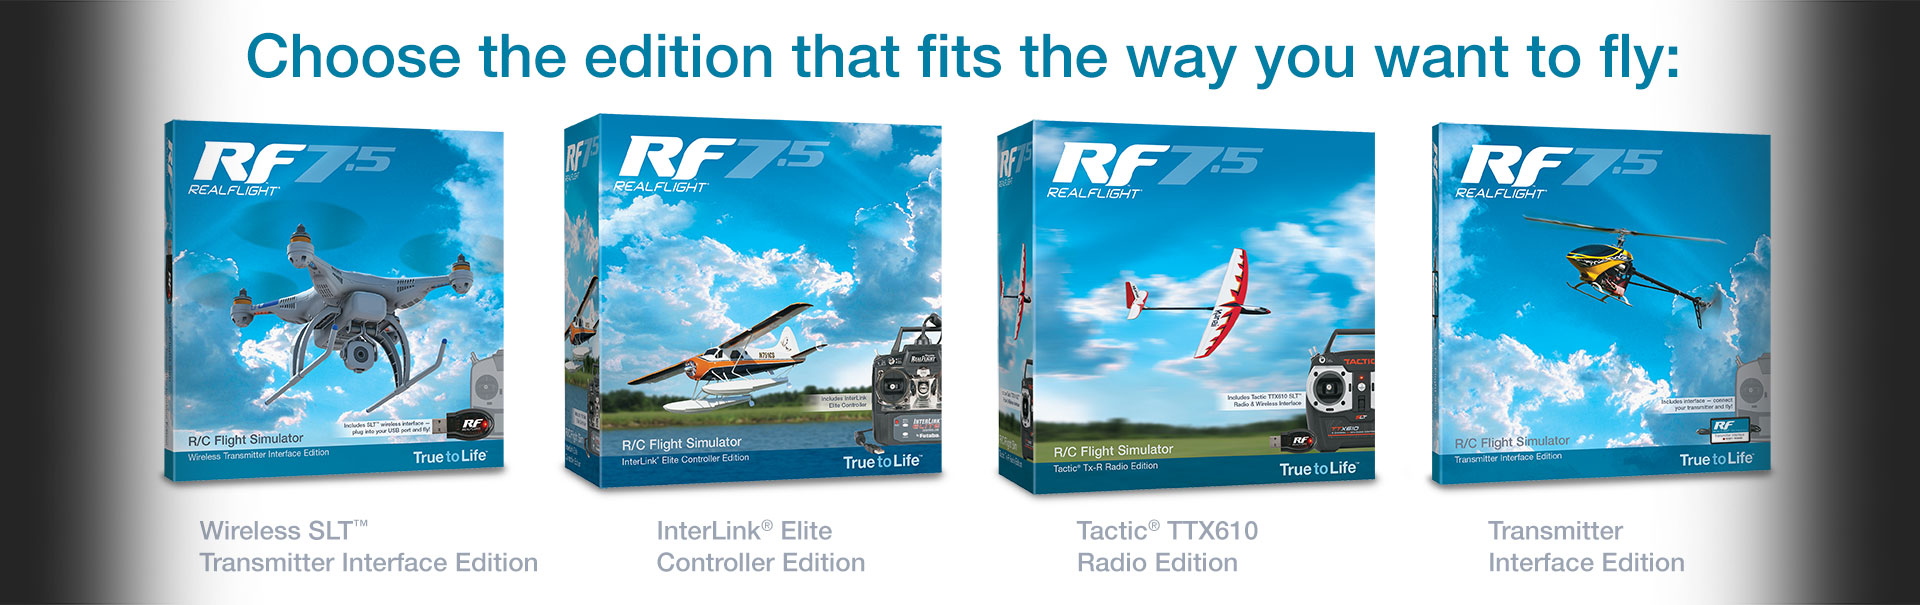 Choose the RF7.5 edition that fits the way you want to fly: Wireless sLT Transmitter Interface Edition, InterLink Elite Controller Edition, Tactic TTX610 Radio Edition, Transmiter Interface Edition